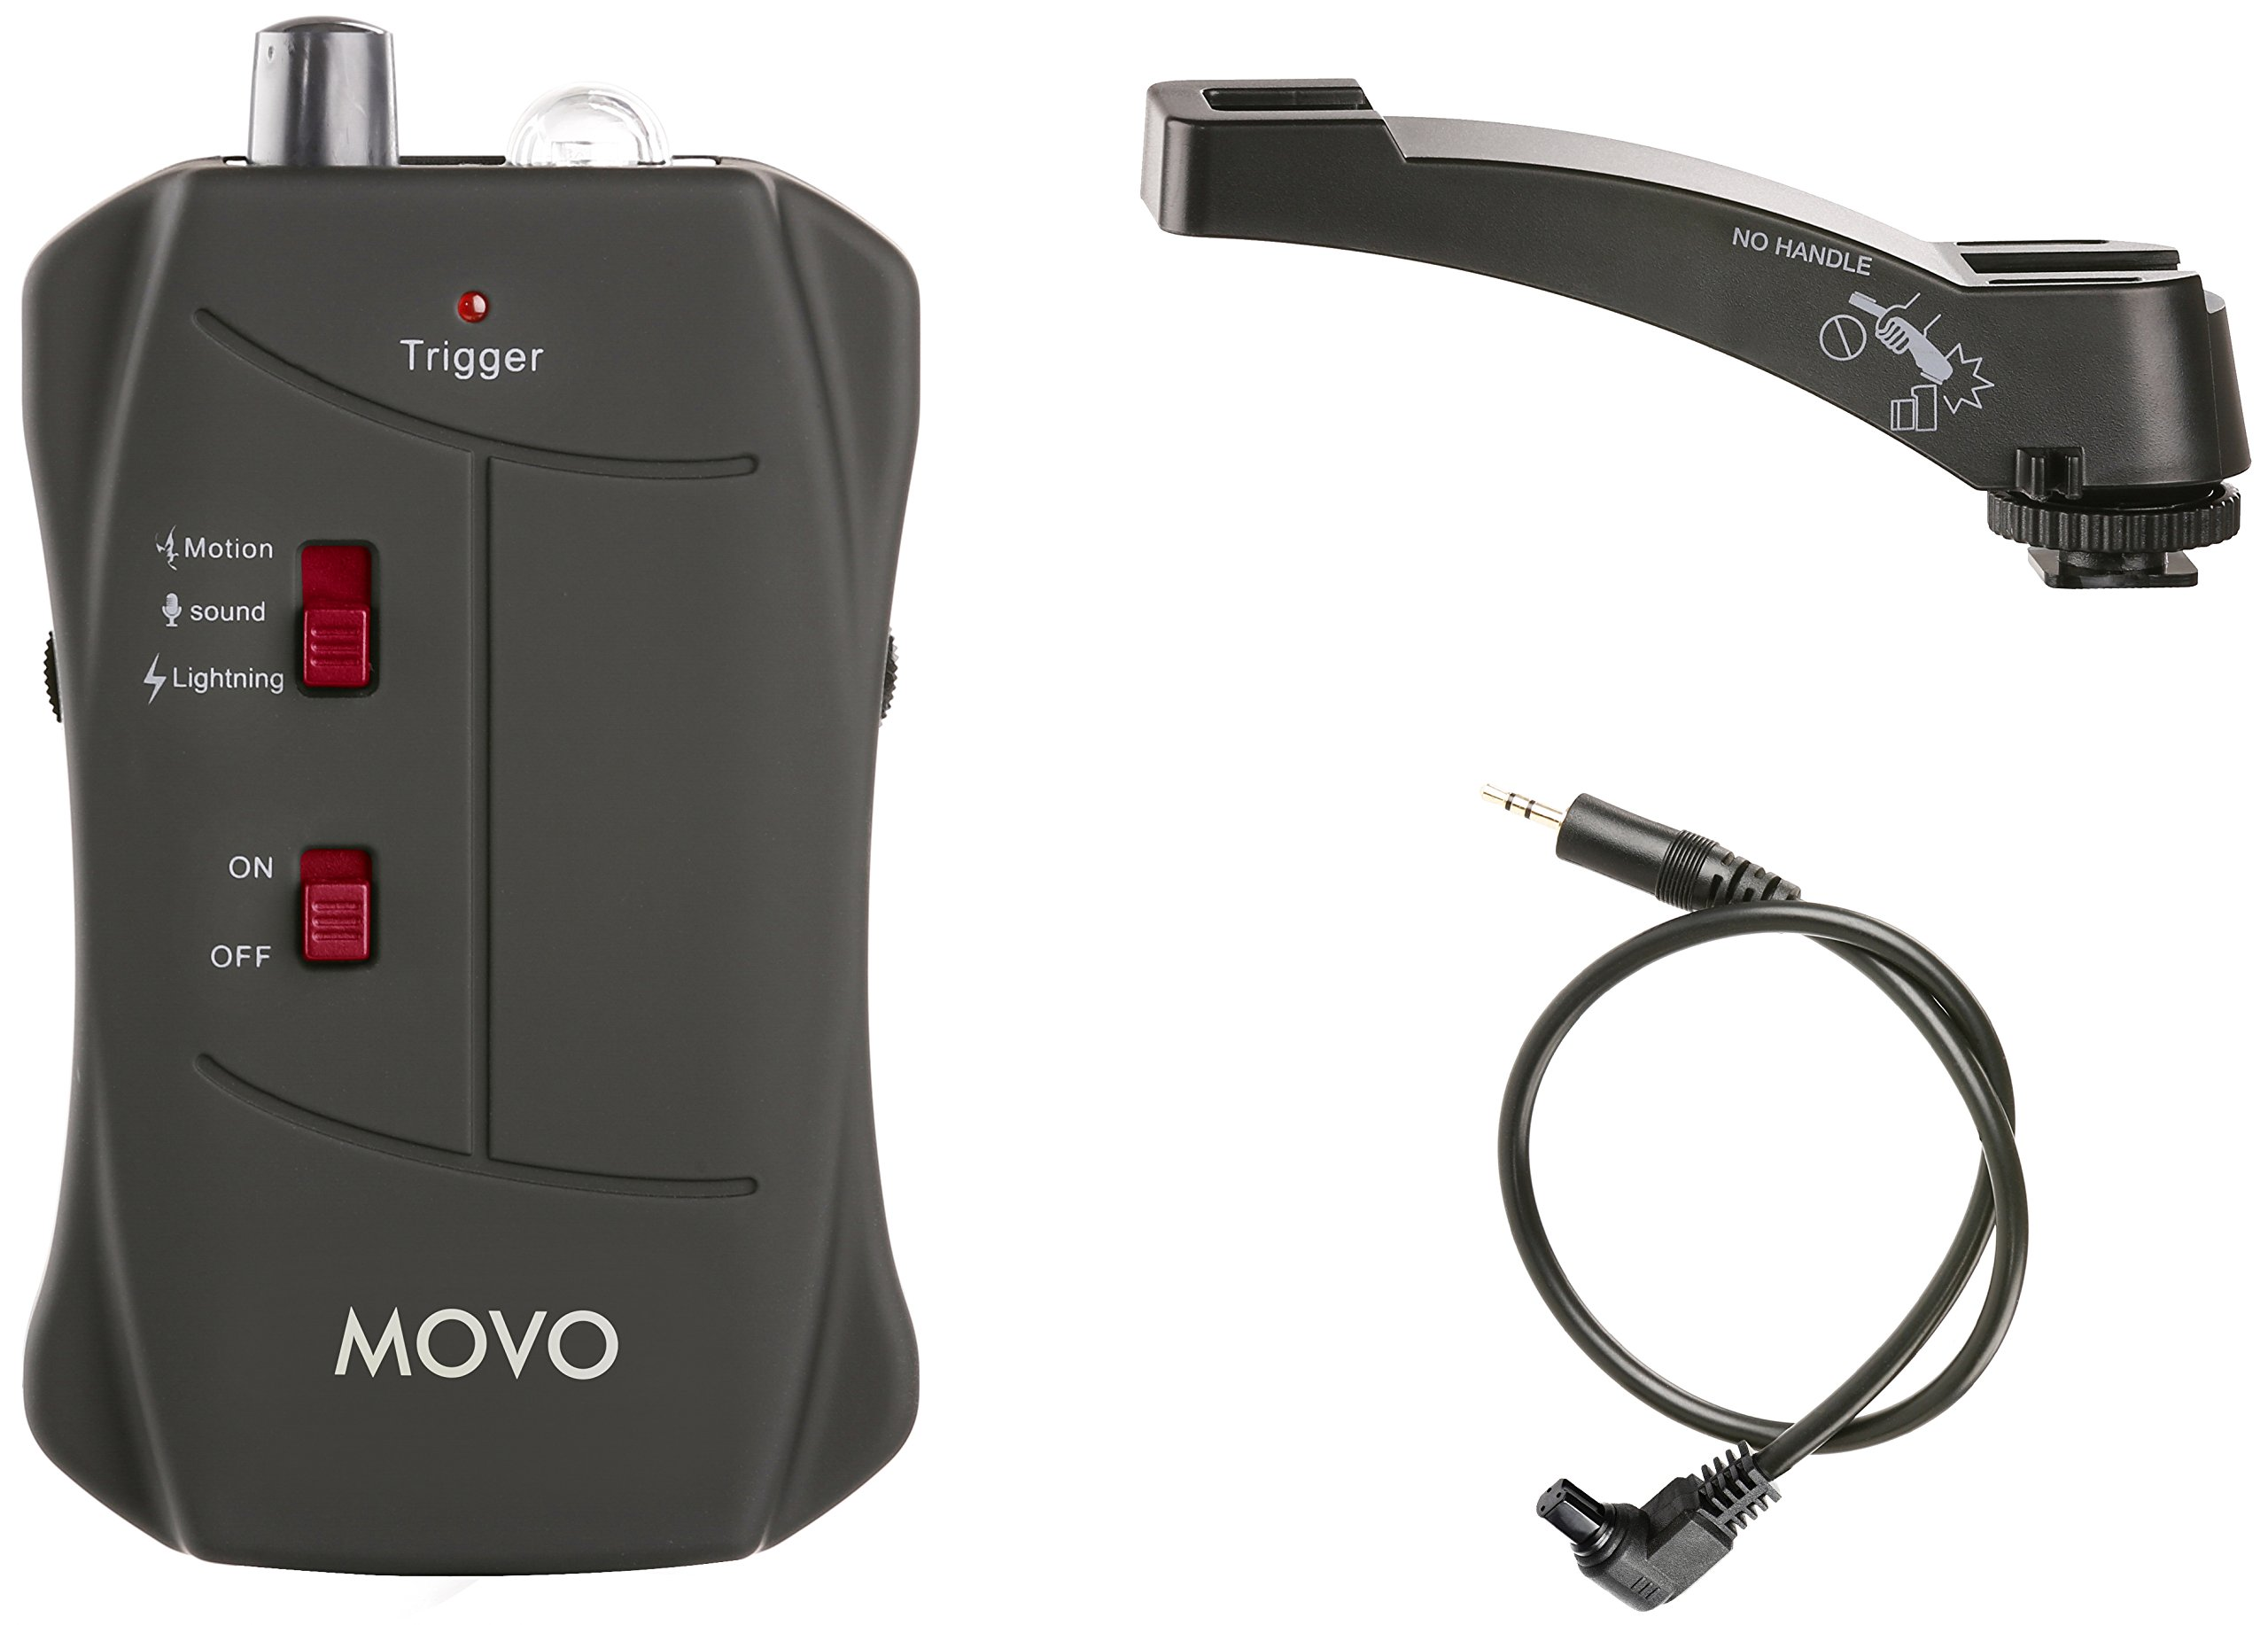 Movo LC200-C3 Sound, Motion and Lightning Shutter Trigger for Canon EOS 1D, X, 1DS, 5D, 5DS, 5D Mark IV, 6D, 7D, 50D DSLR Camera by Movo